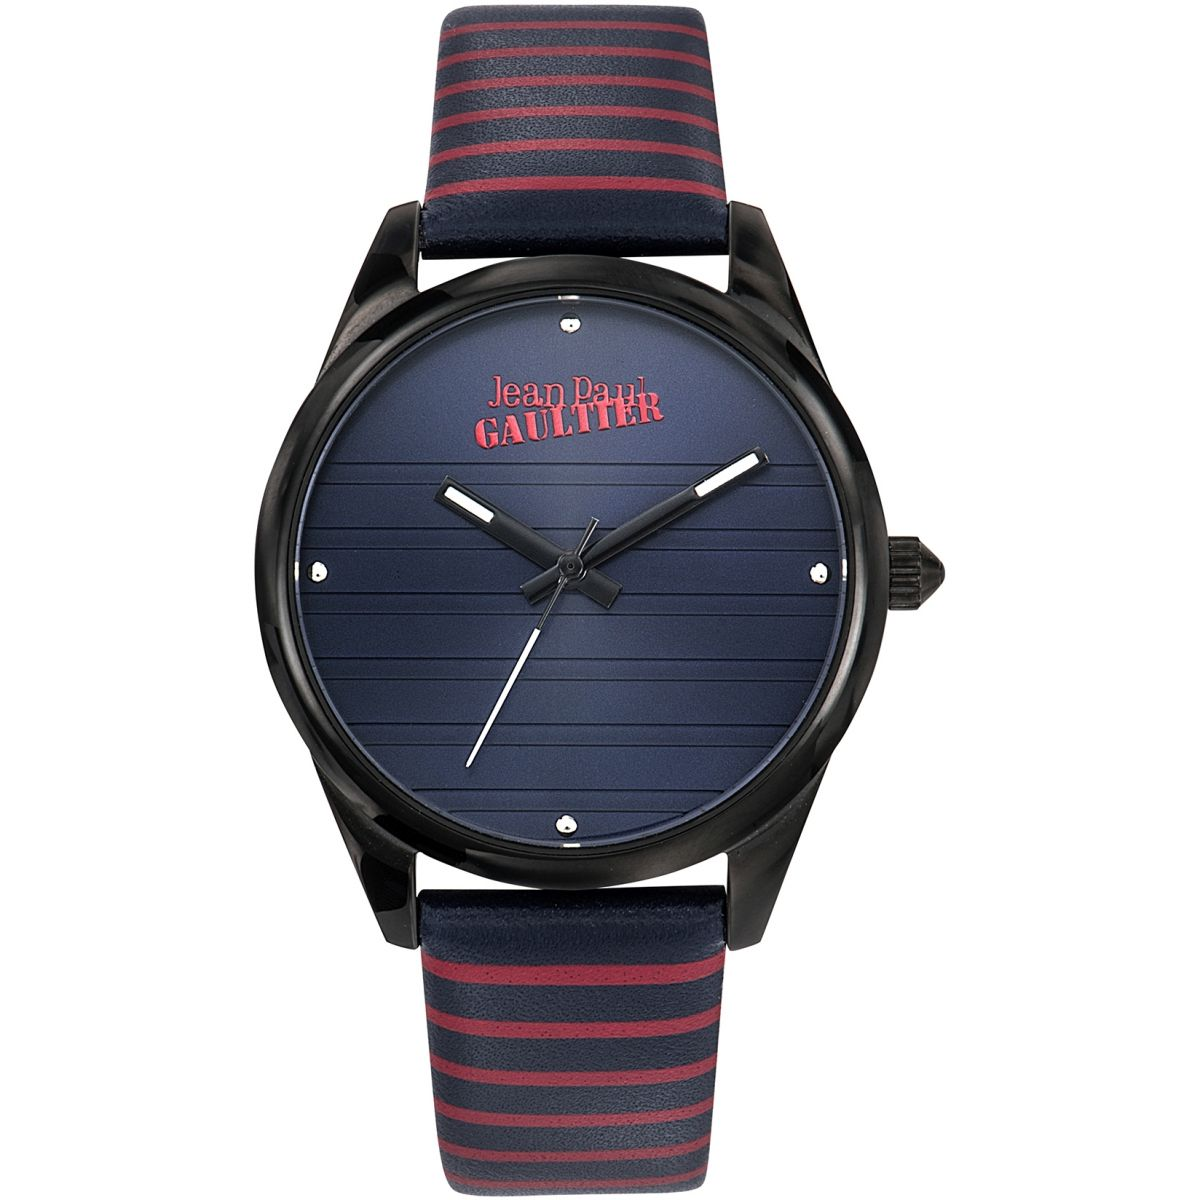 Jean-Paul-Gaultier-Watches-Man-For-Himself-3